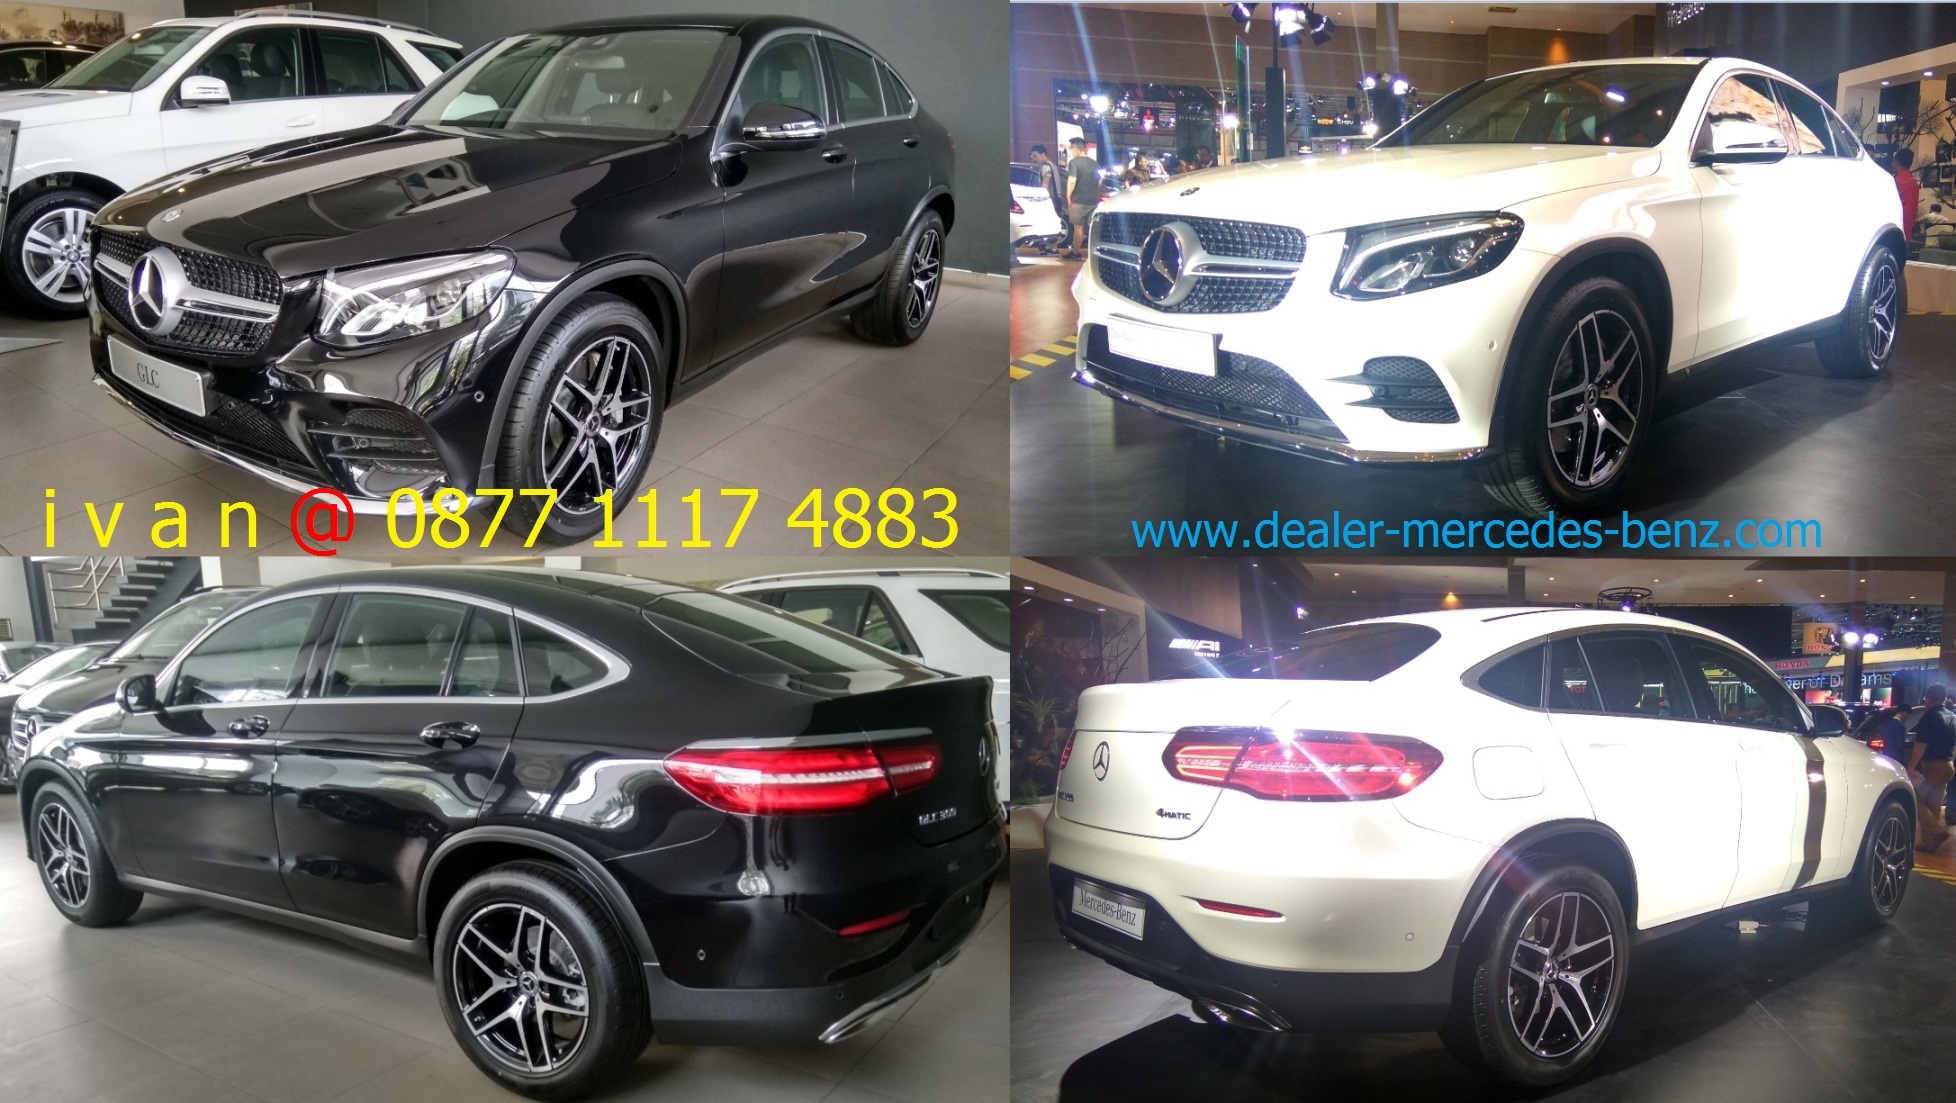 Mercedes benz glc 300 coupe amg line indonesia 2017 black for Mercedes benz glc 300 coupe